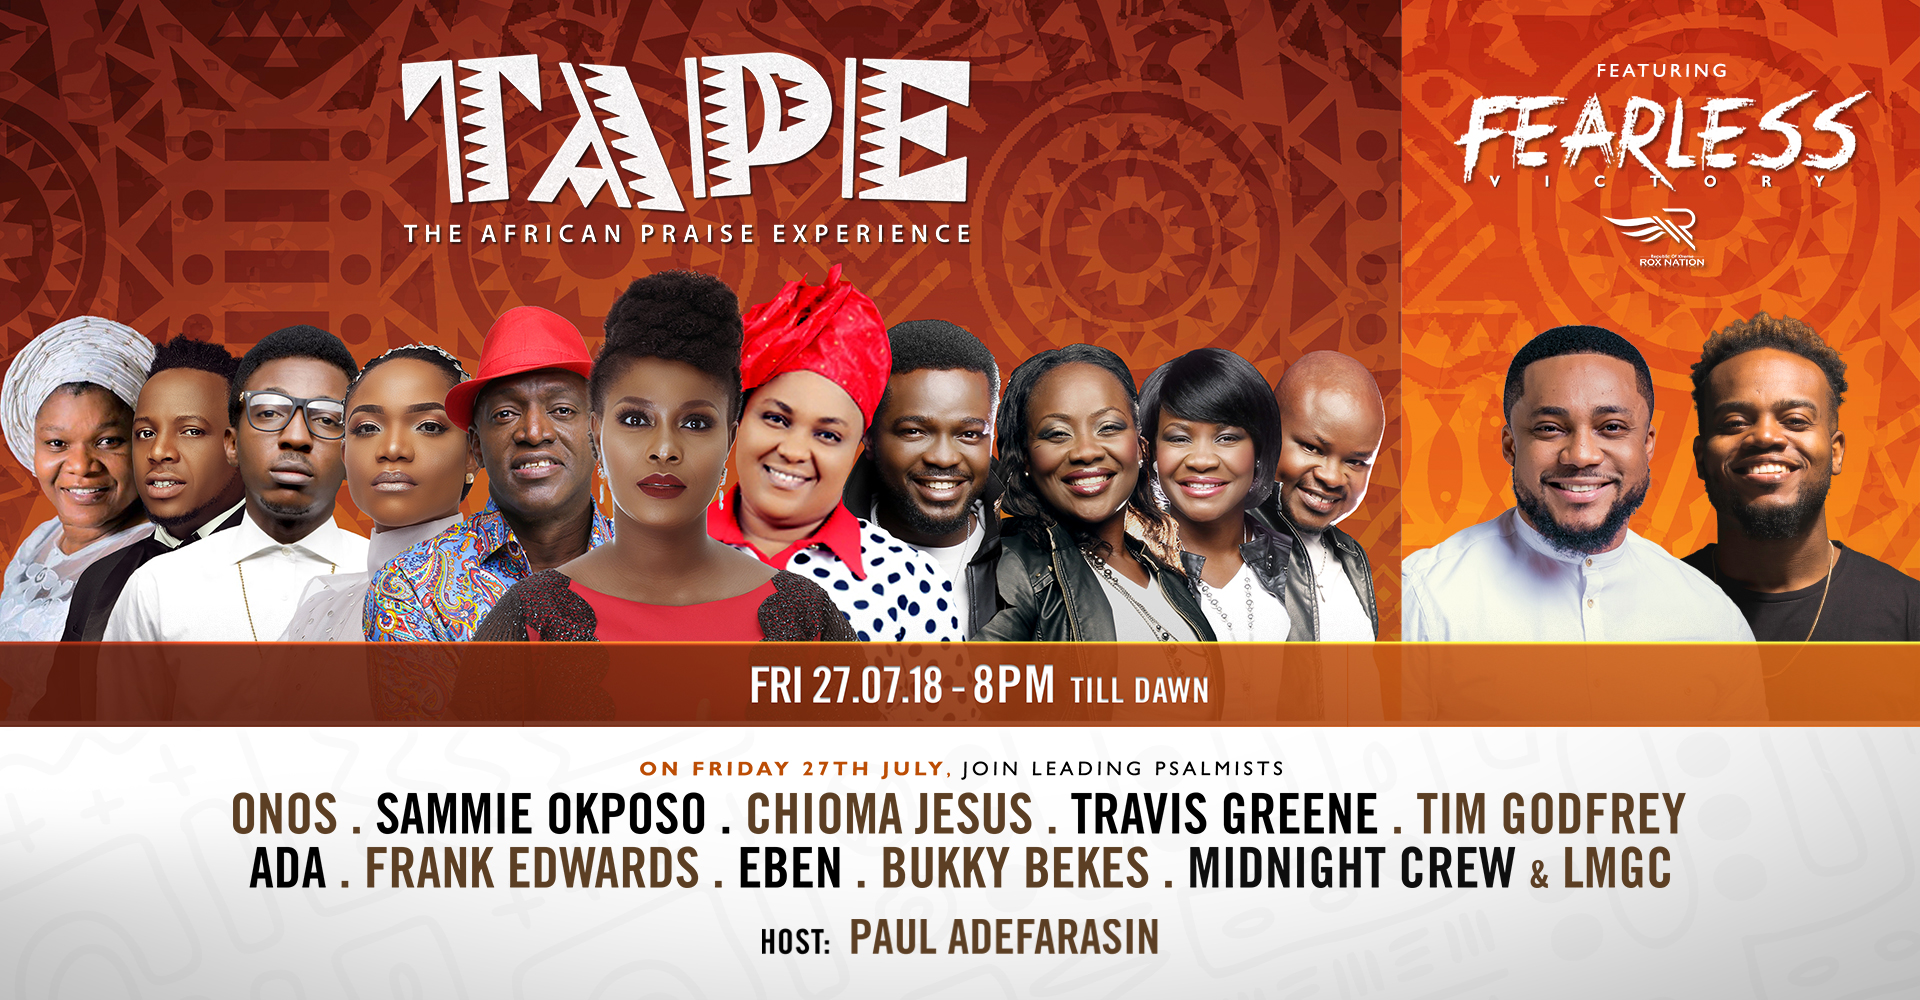 Pastor Paul Adefarasin to host The African Praise Experience (T.A.P.E.) & Travis Greene in Concert Friday, July 27th